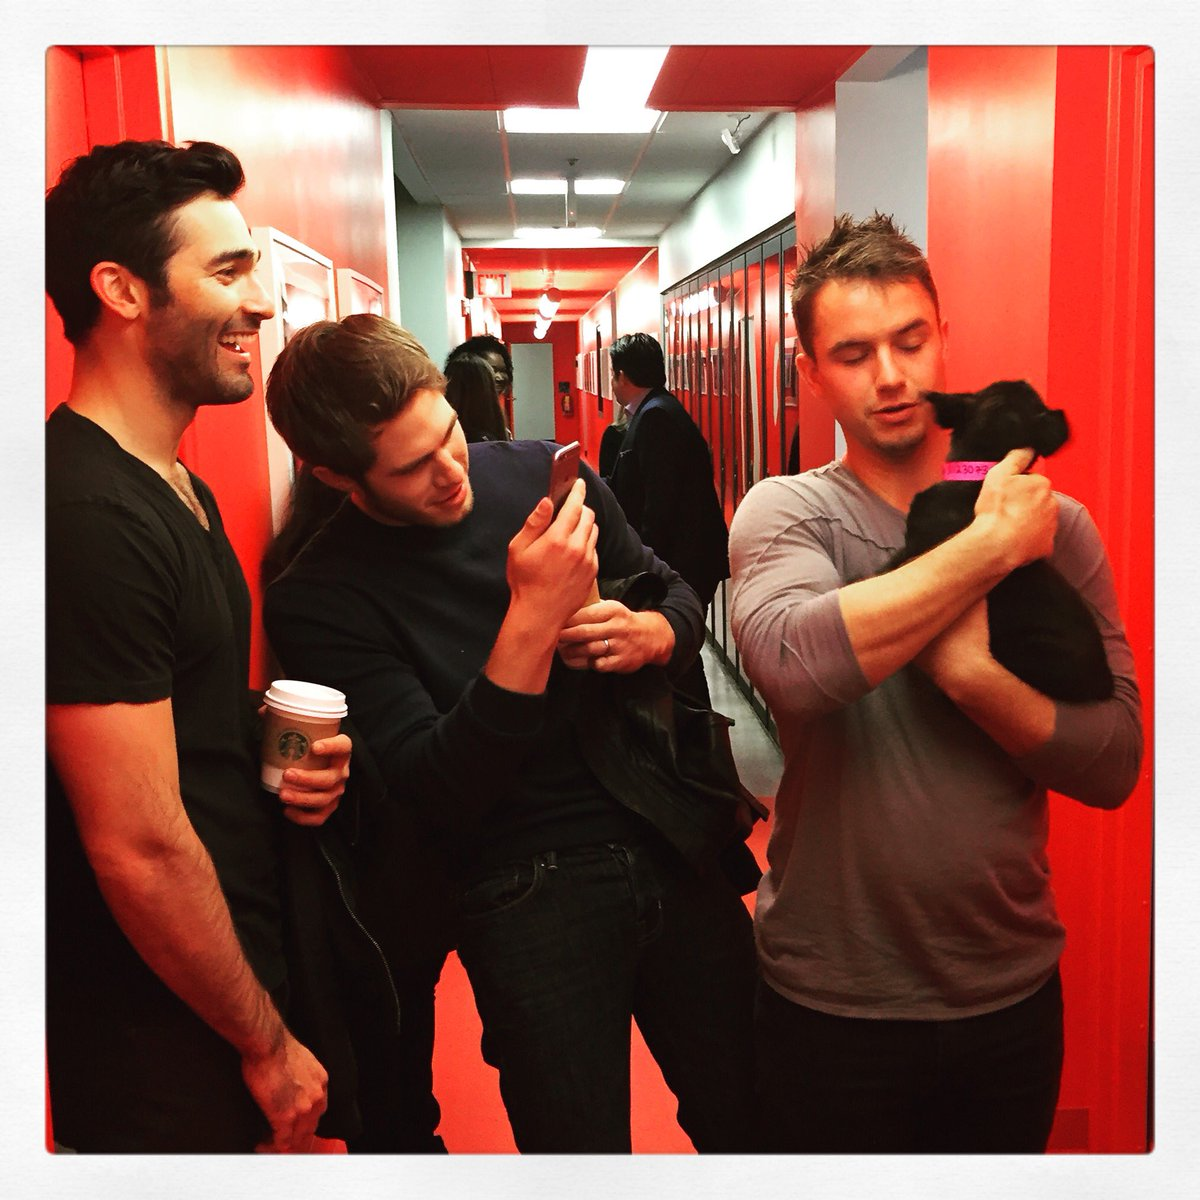 We met @TylerL_Hoechlin, @Blake_Jenner and @will_e_brittain while promoting @EWSMovie. They just loved our pup Lucy! https://t.co/g5OYP3Rg25